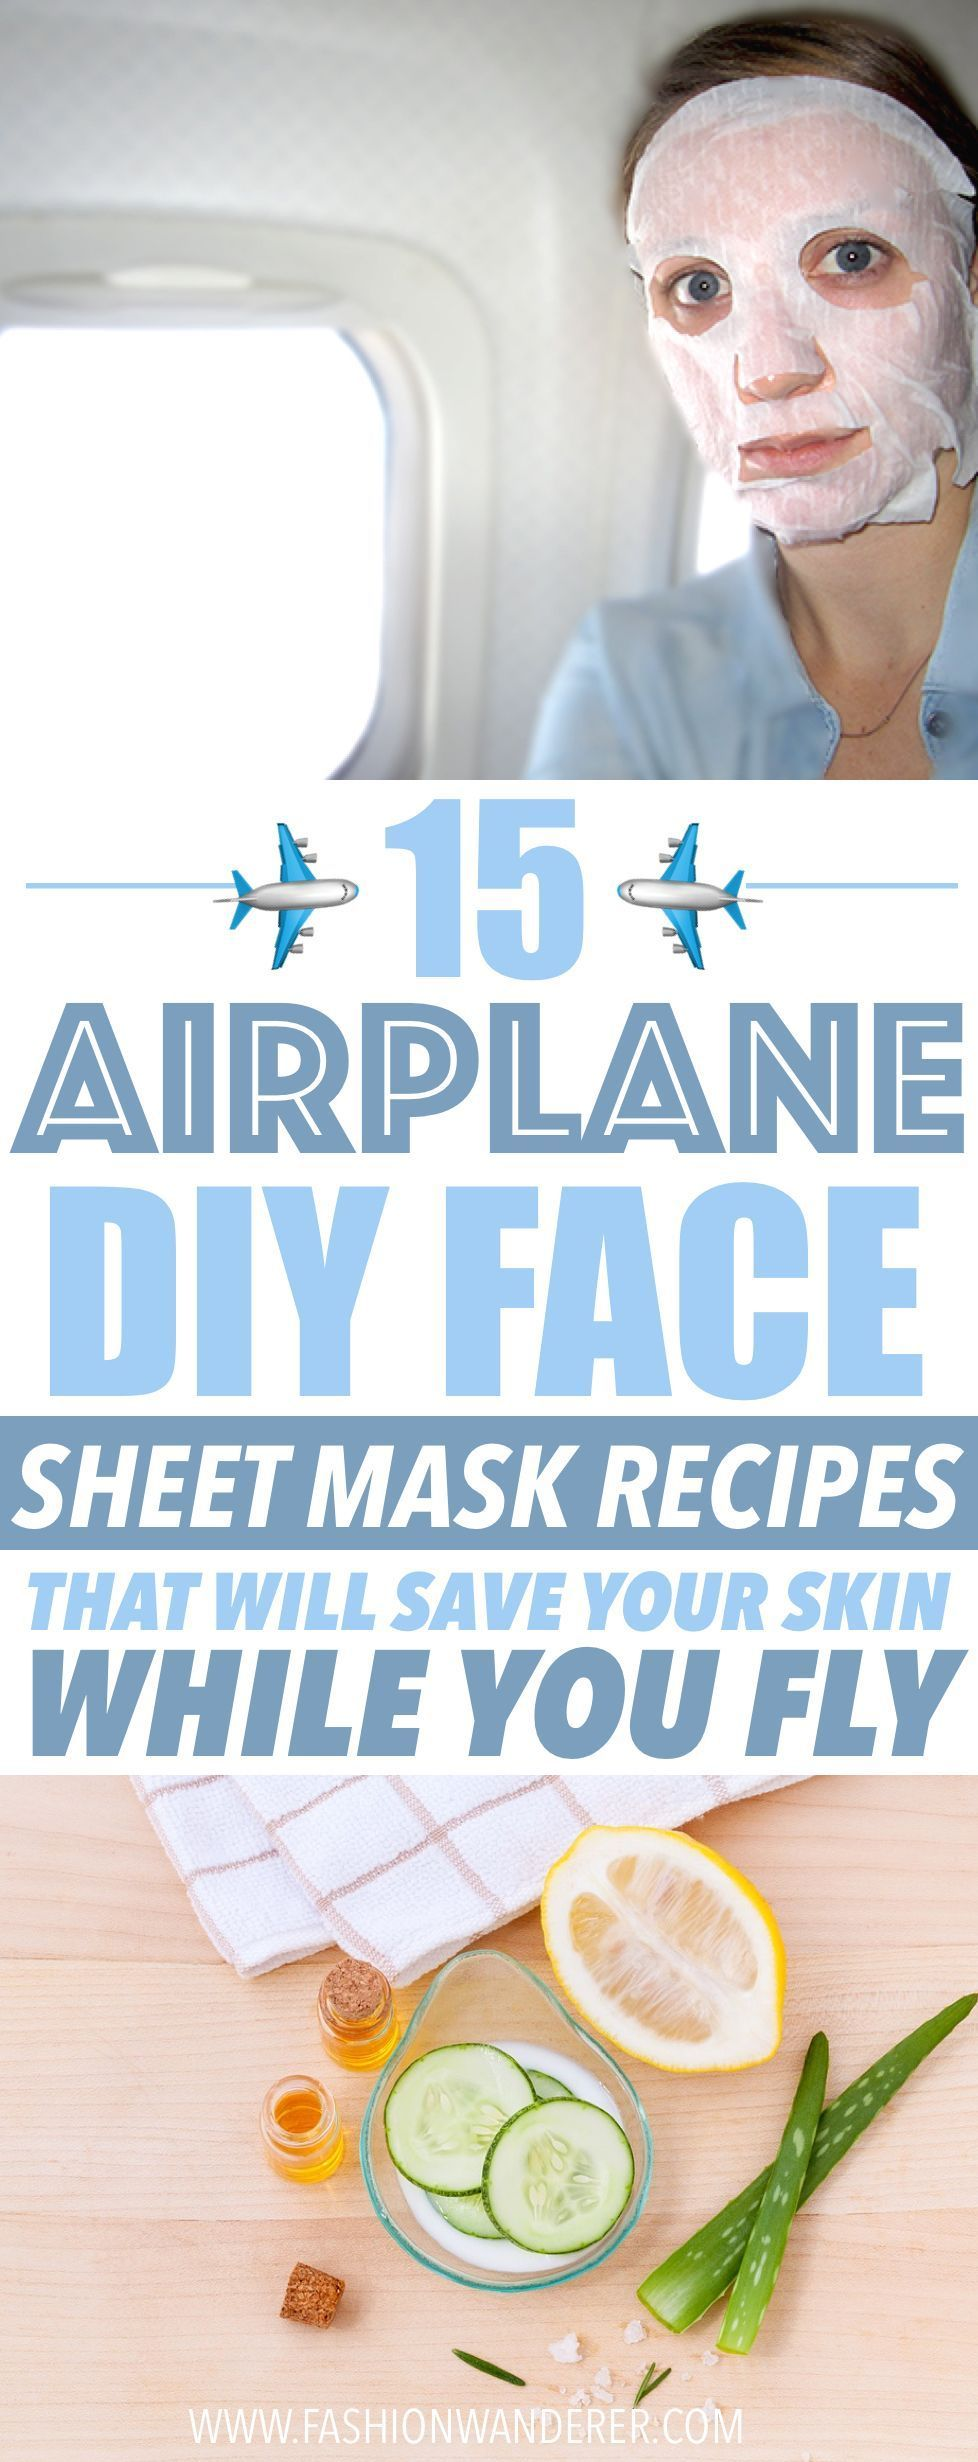 These airplane DIY face sheet mask recipes are AMAZING Ium glad to